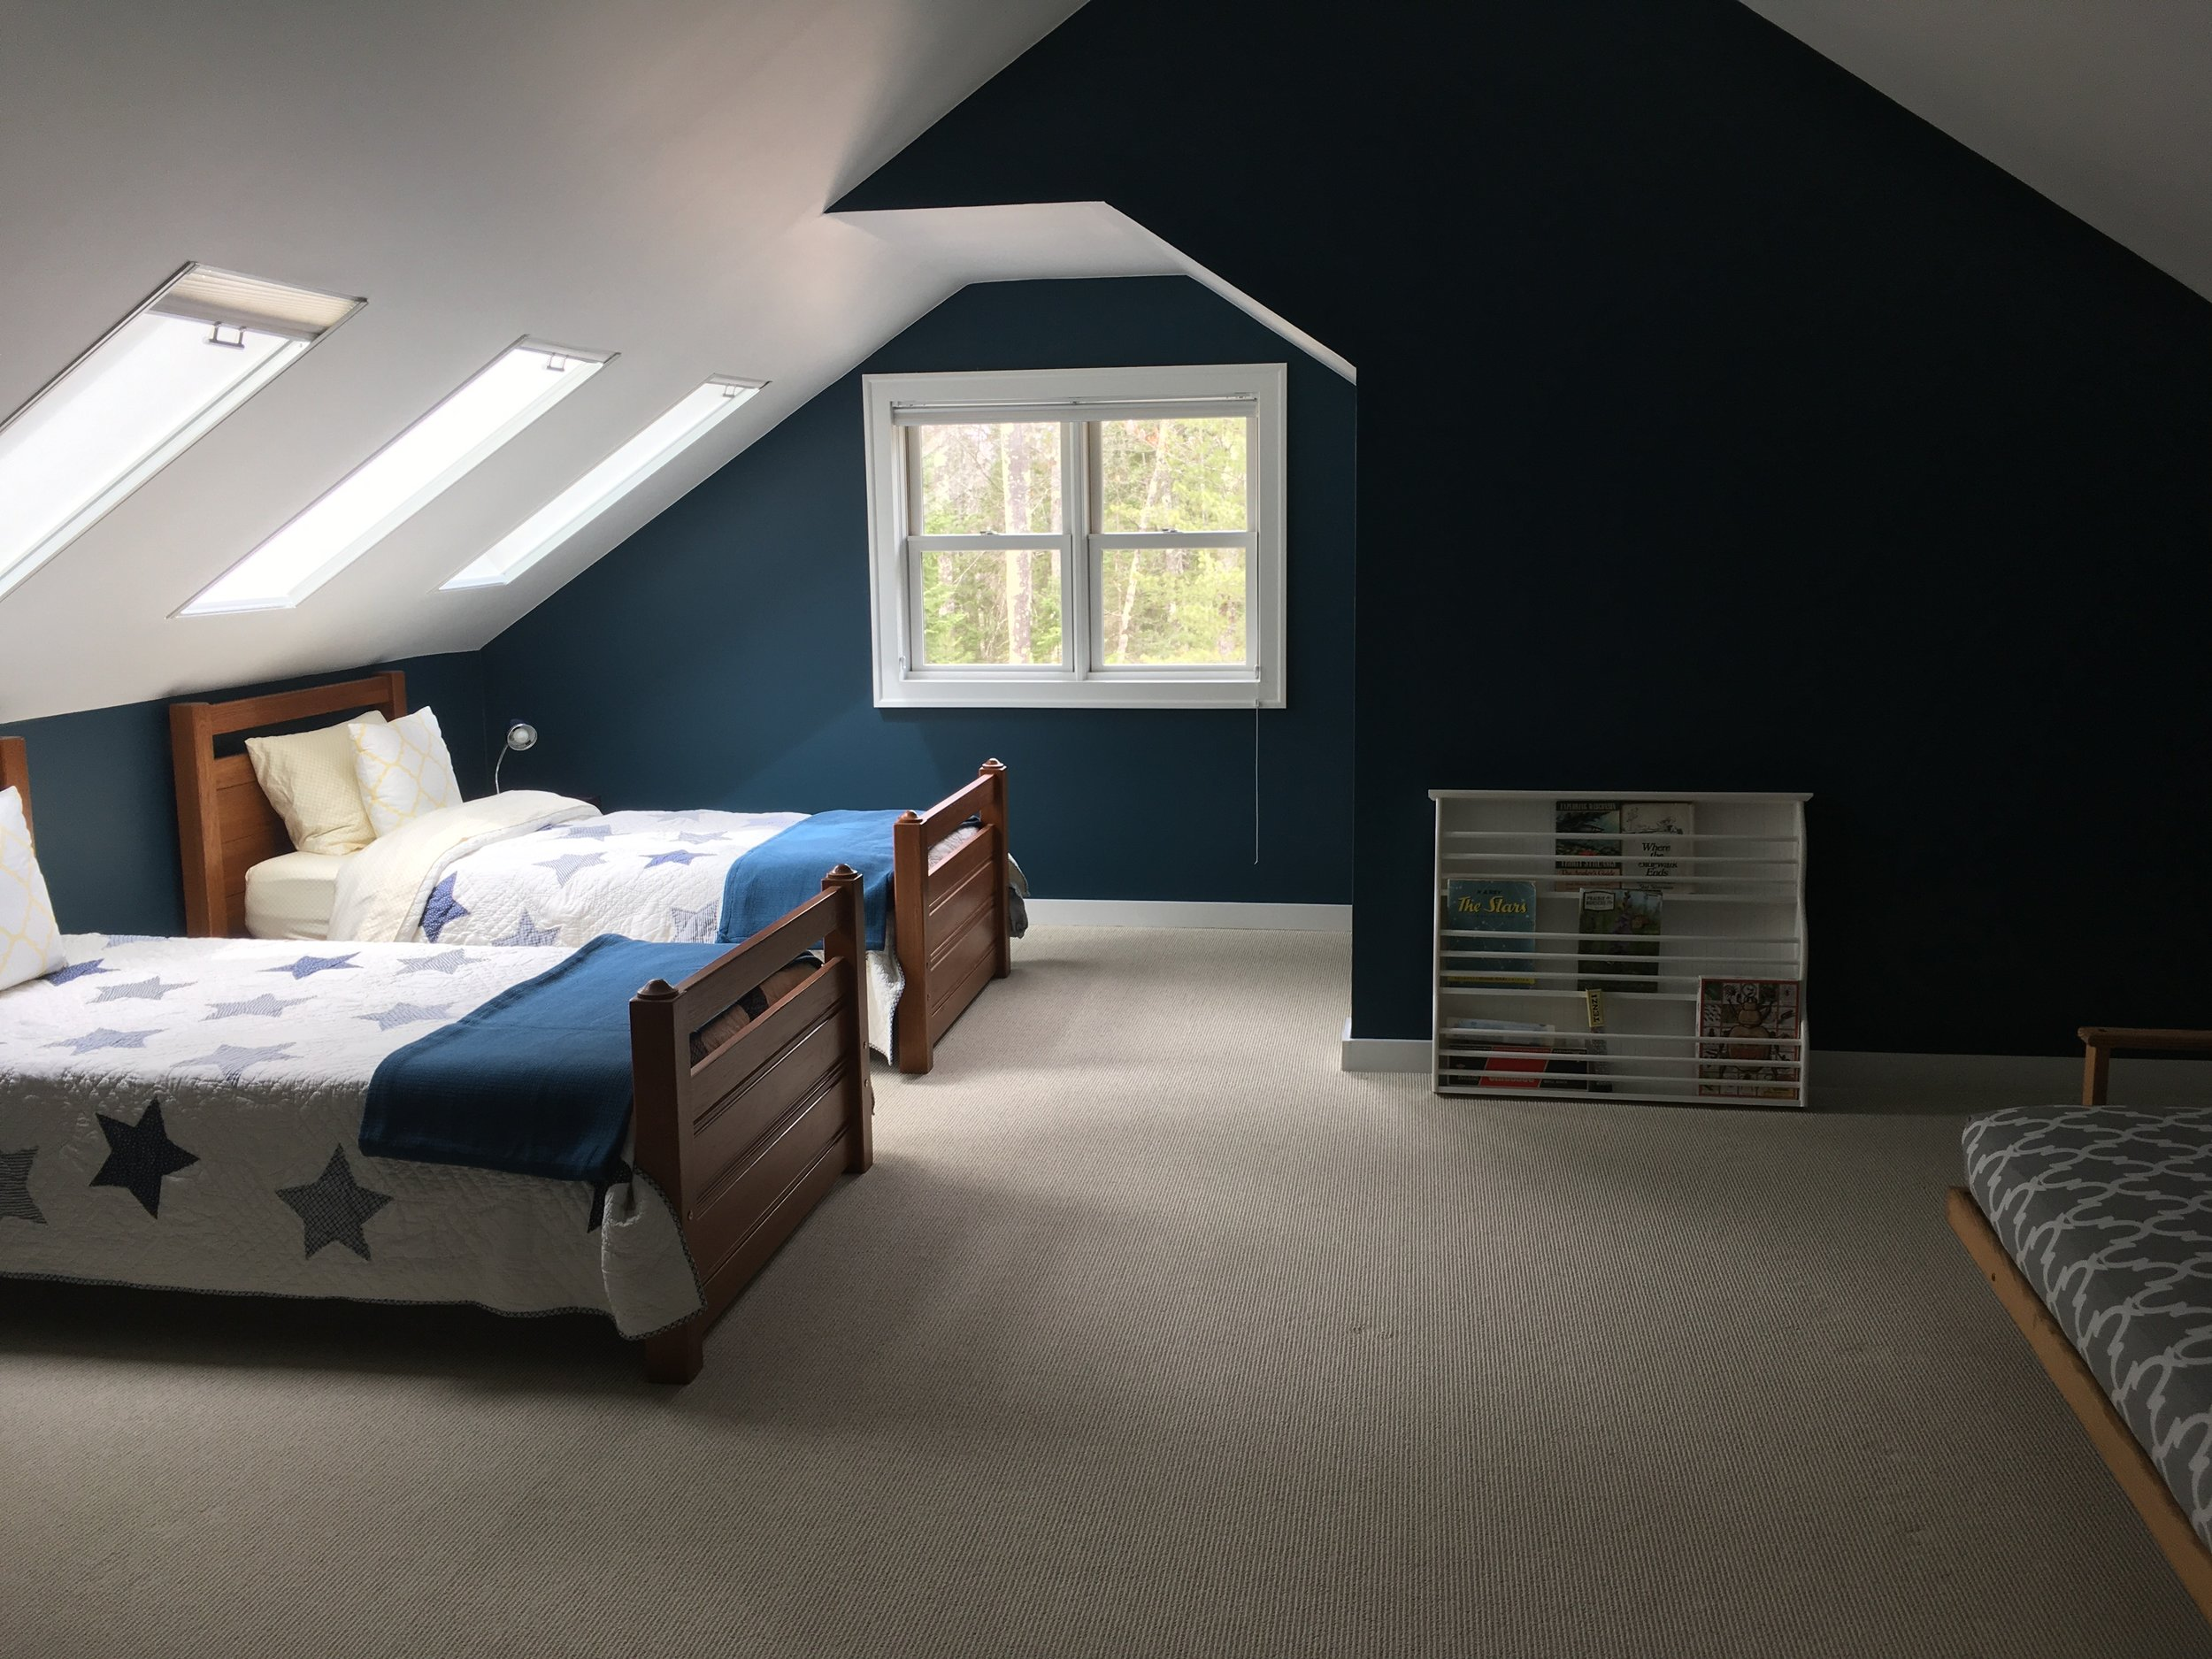 blue room with skylights for star viewing